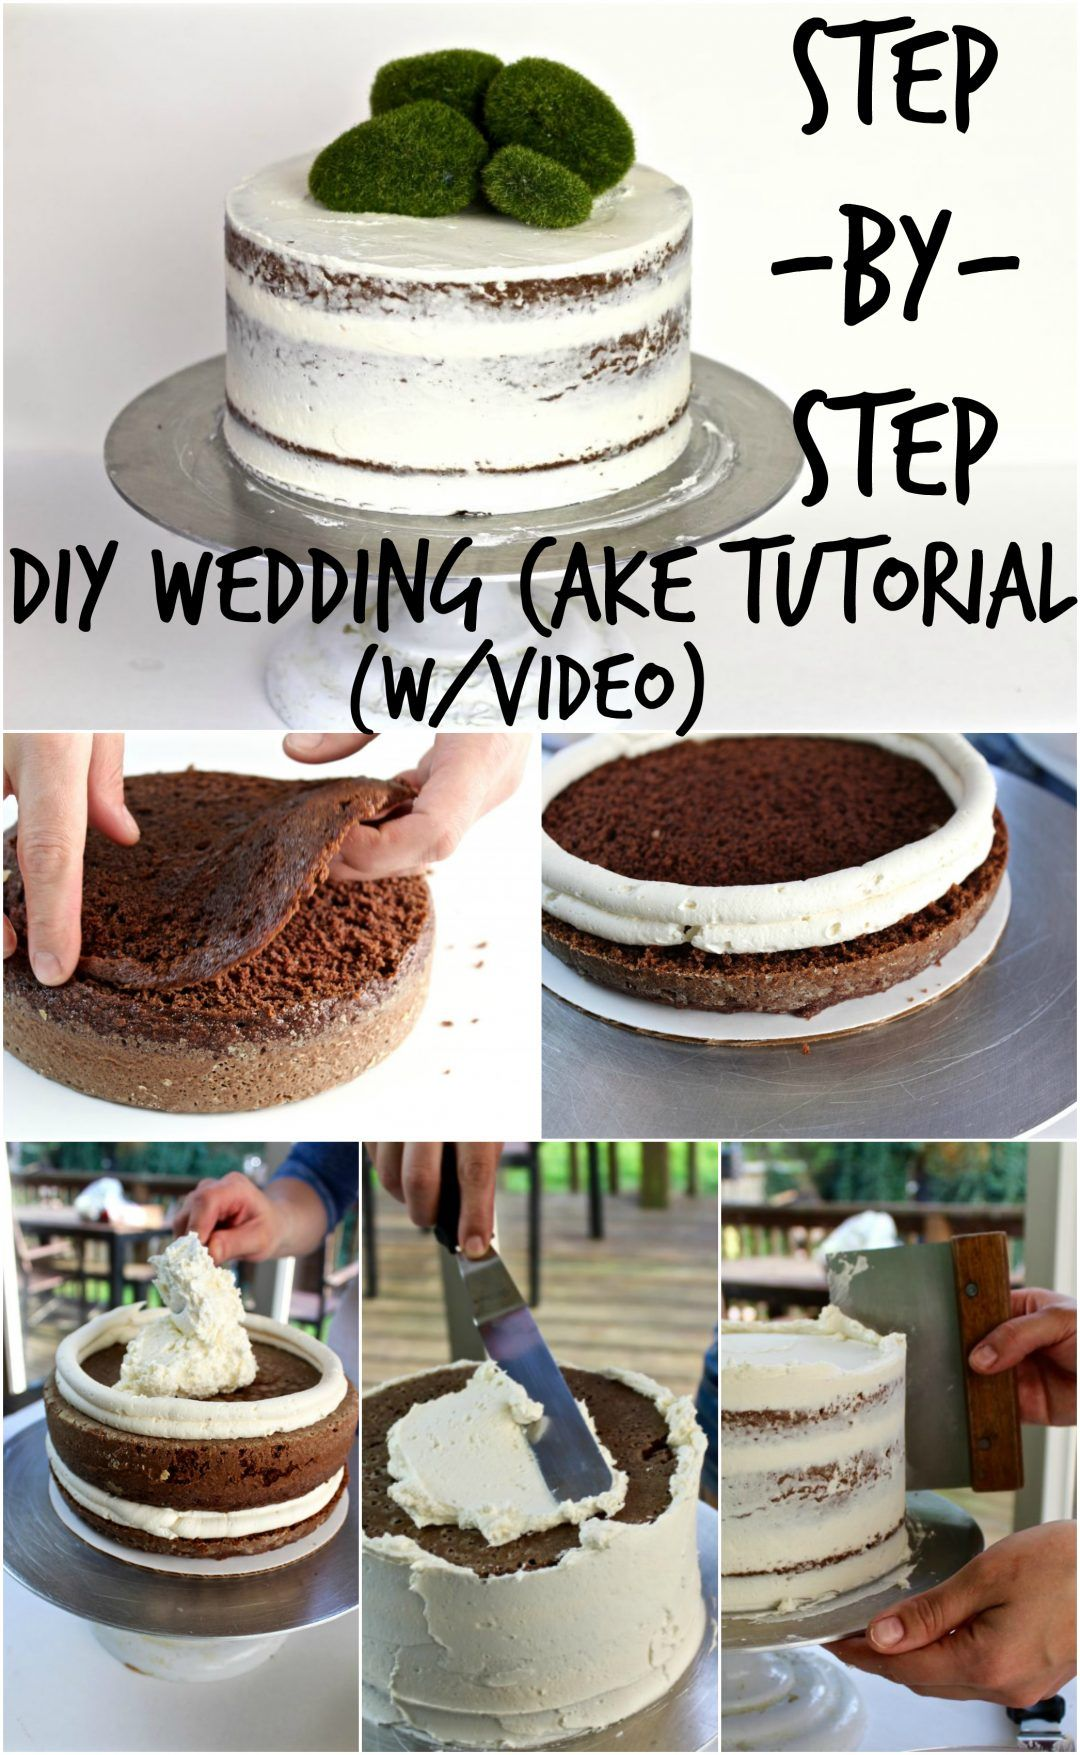 DIY WEDDING CAKE TUTORIAL | Parties and Events | Pinterest | Diy wedding cake, Cake tutorial and